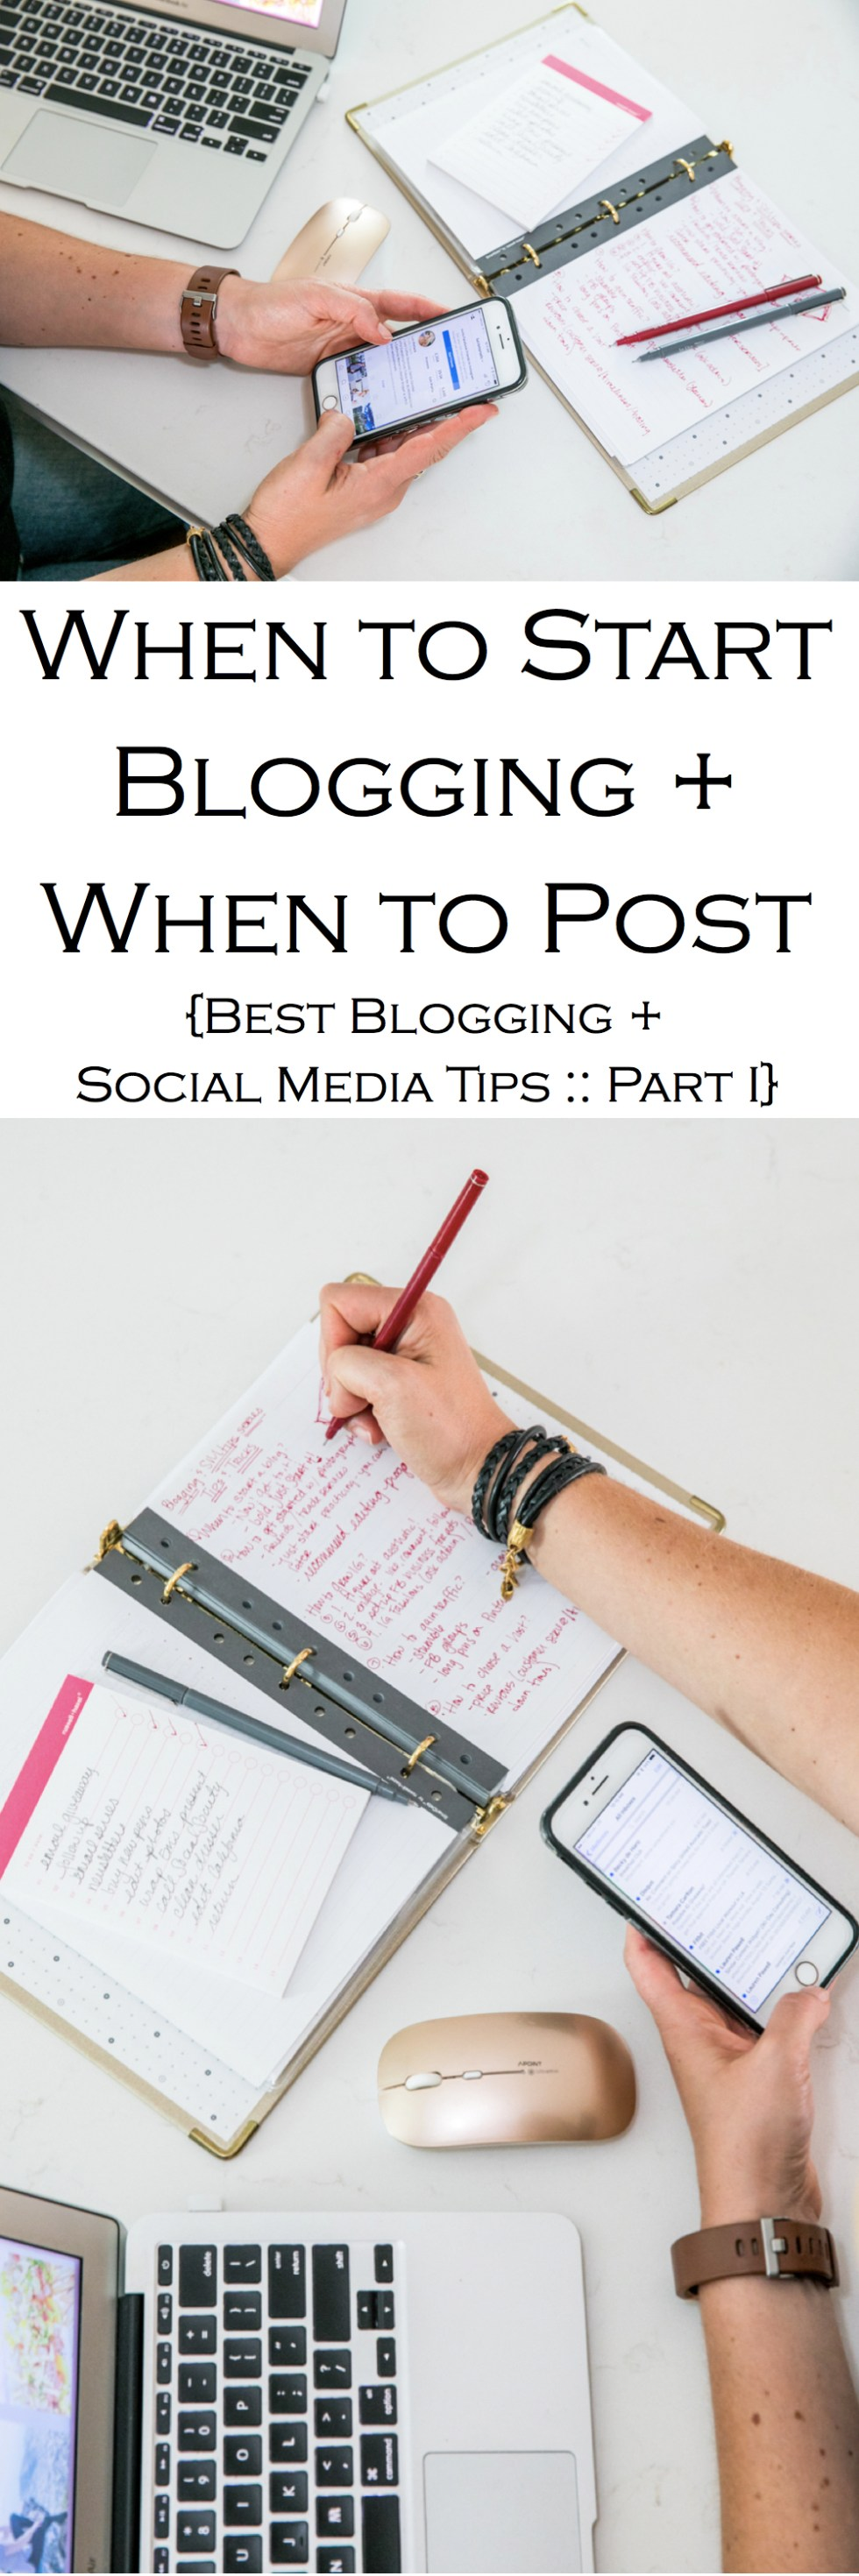 """Want to start a blog but don't know when? Part one of this """"Best Blogging + Social Media Tips Series"""" answers when you should start a blog and how often you should post!"""